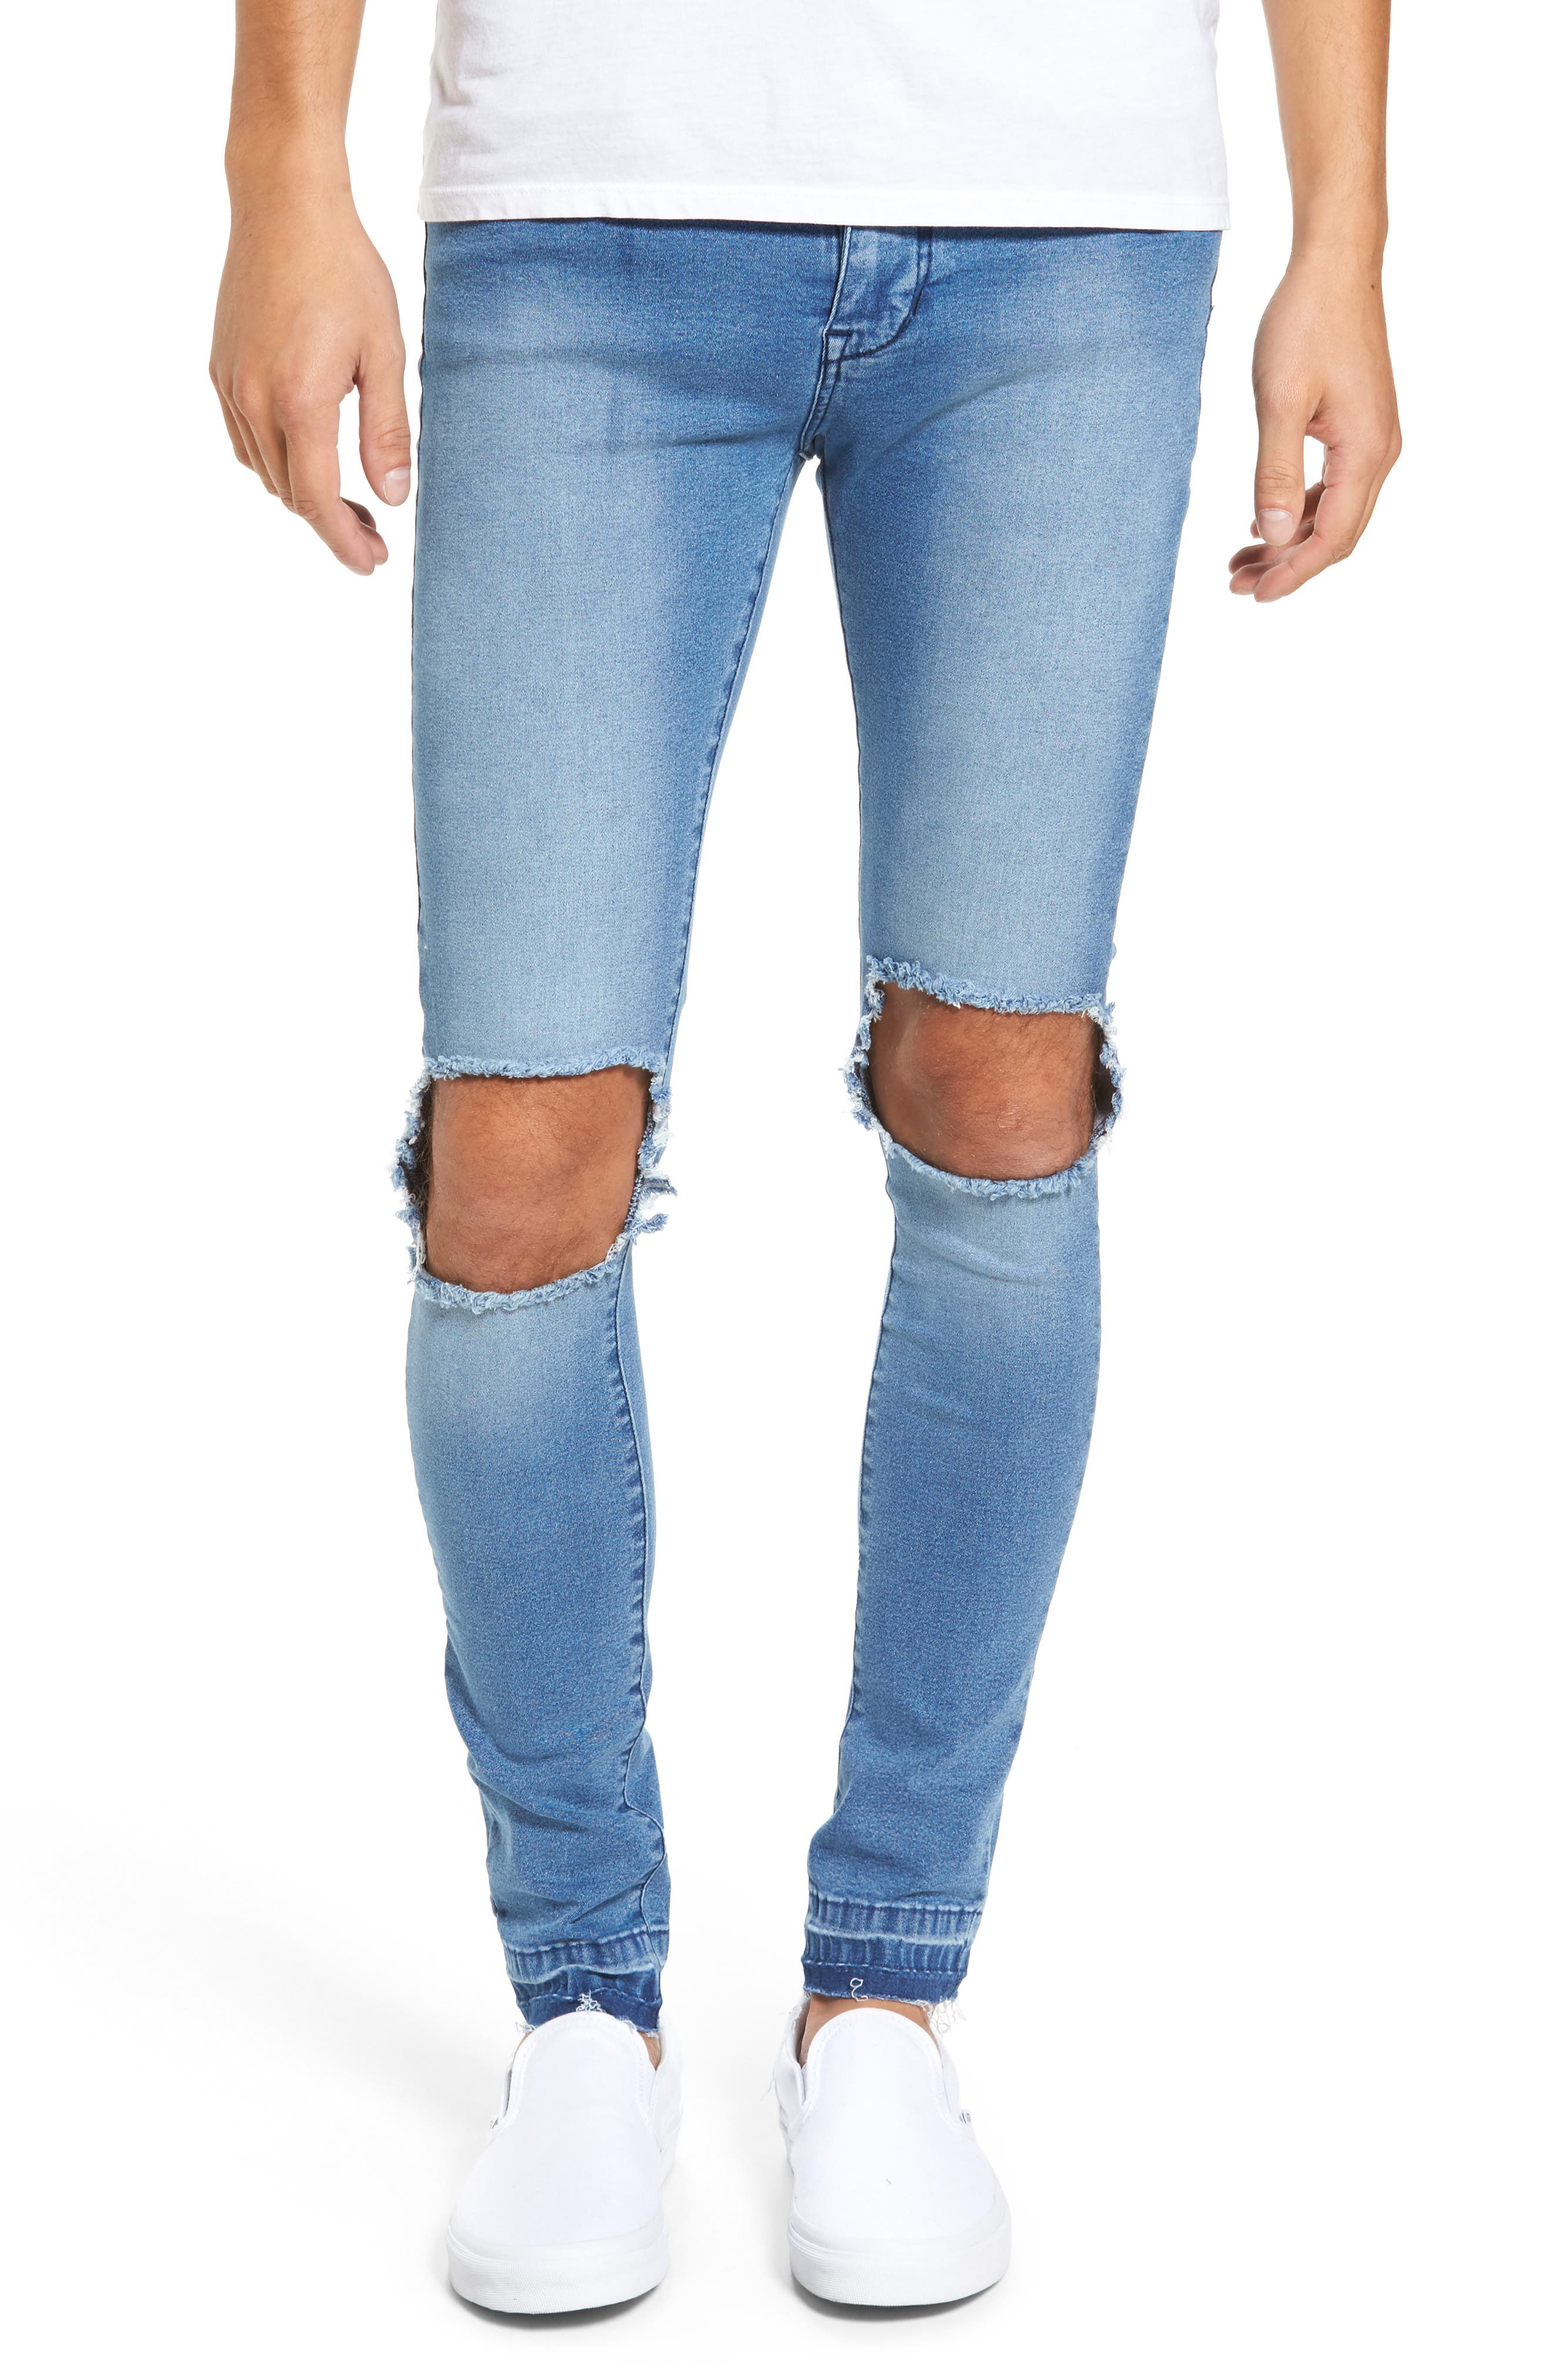 Leroy Slim Fit Jeans (Mid Wrecking Blue)